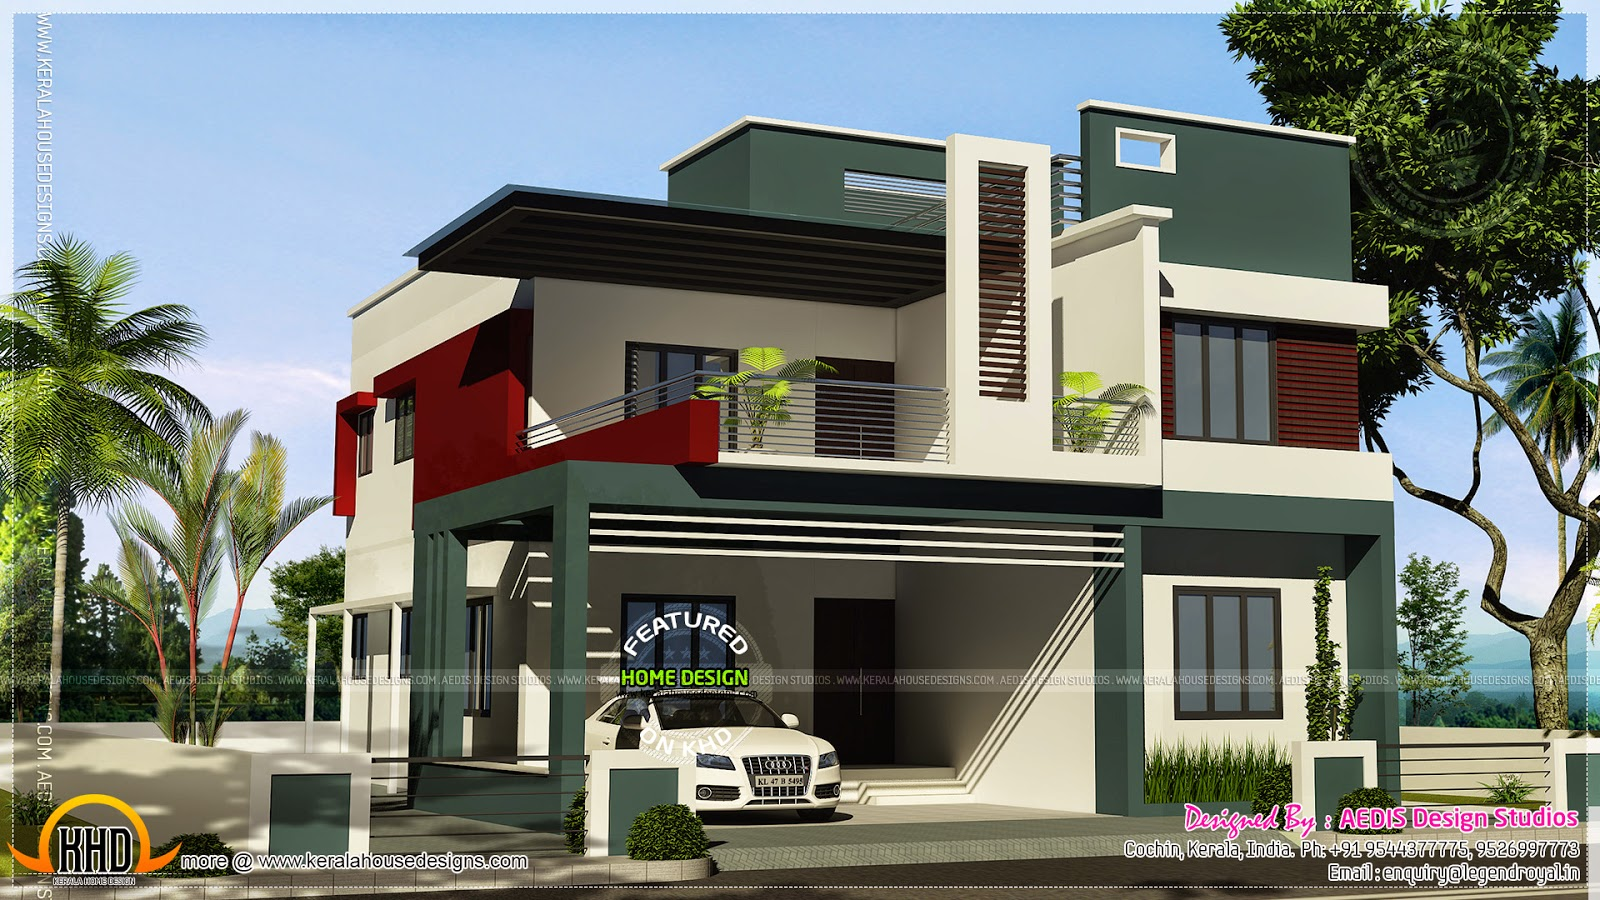 Duplex house plans south indian style home photo style Duplex house plans indian style